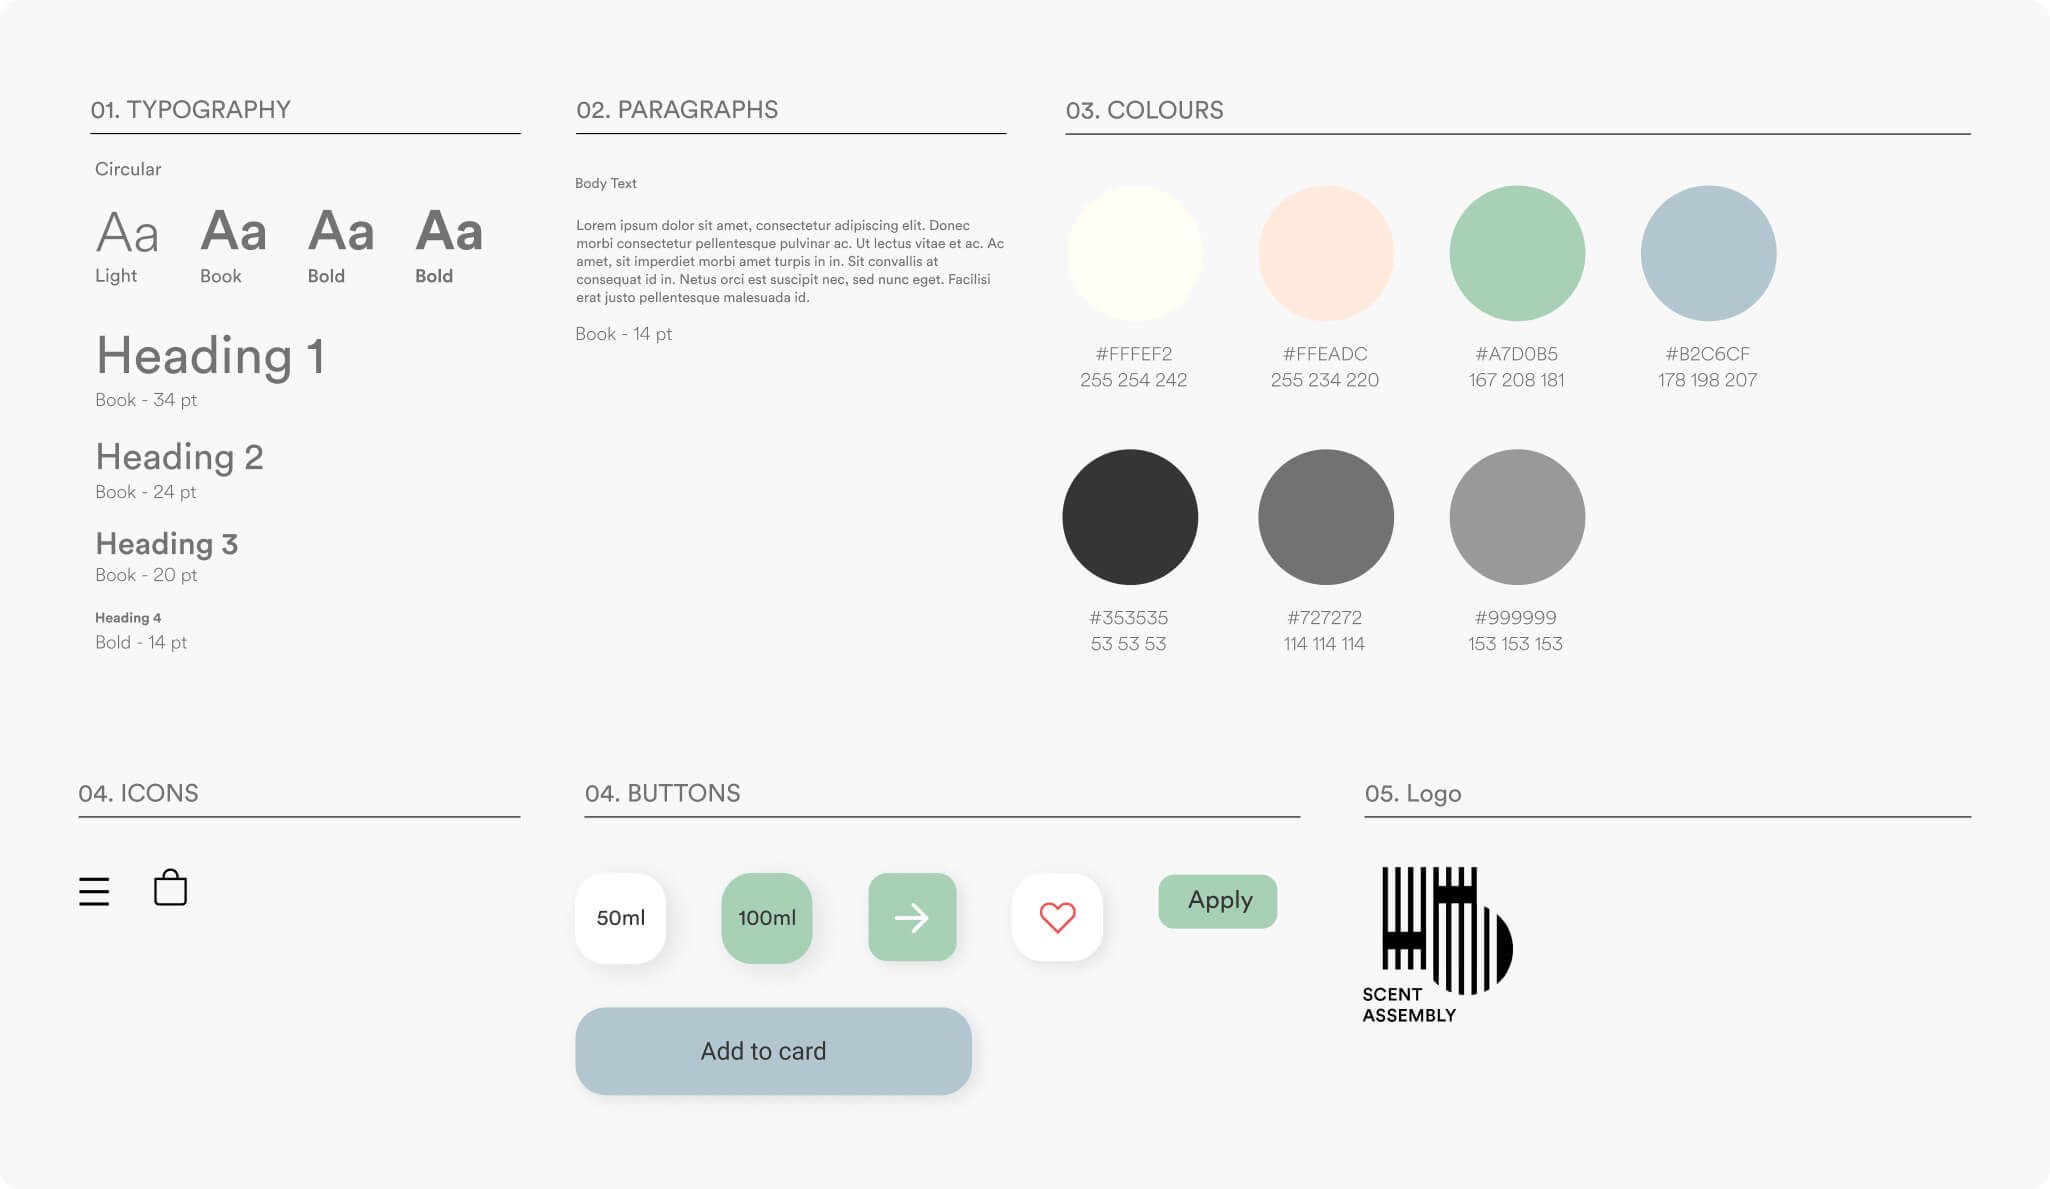 Scent Assembly Brand Style Guide